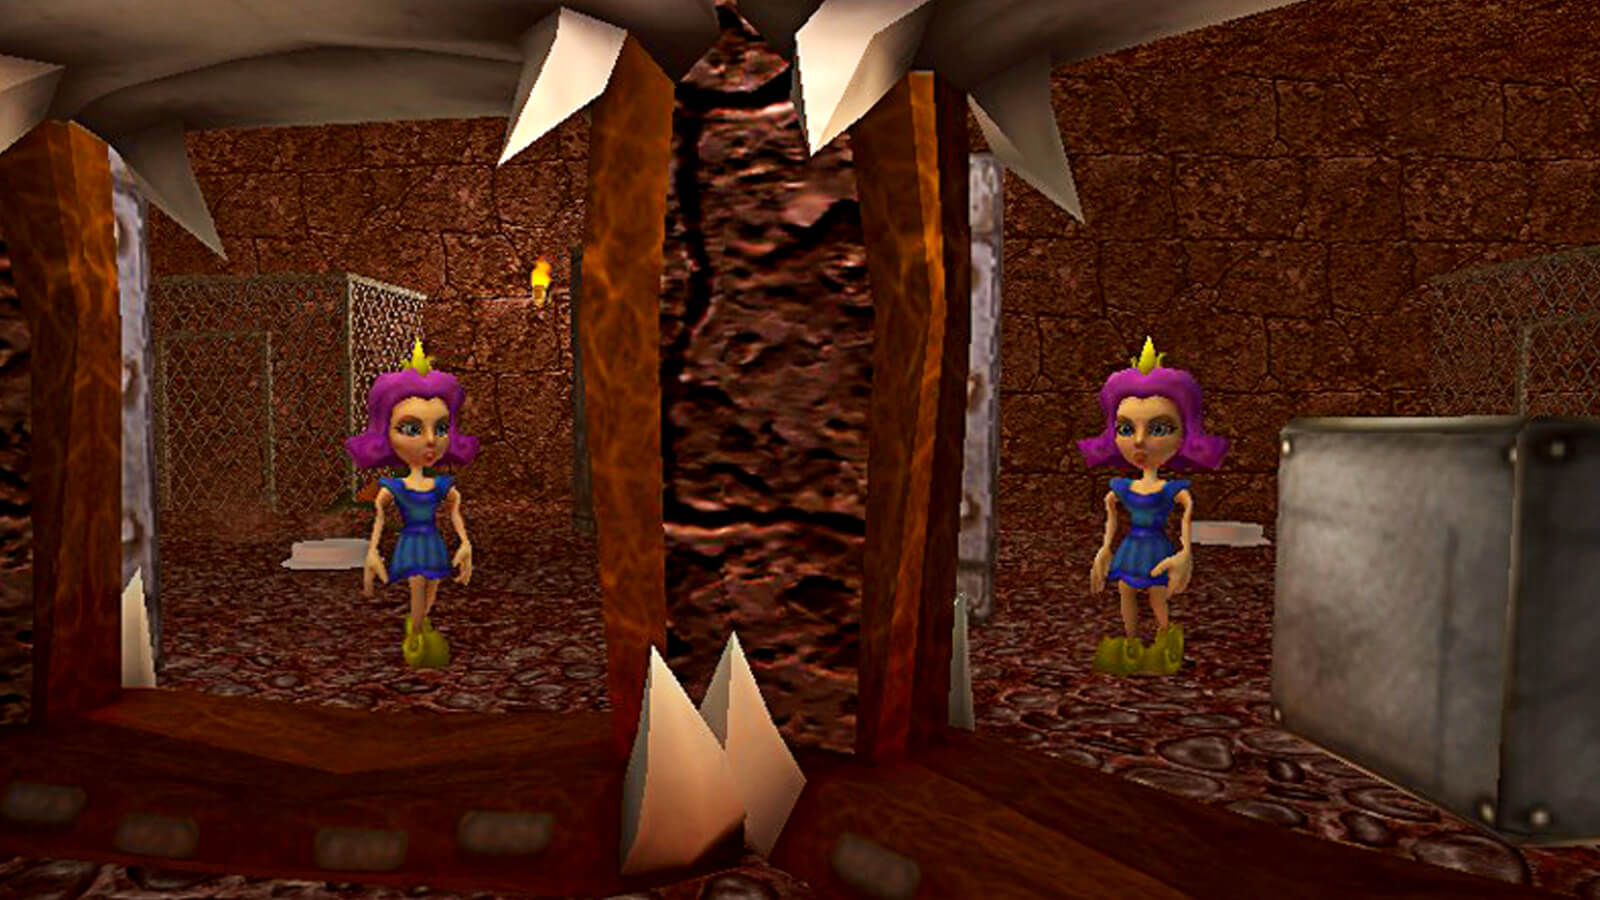 Princess No-Knees stands in front of a dungeon portal and sees a duplicate of herself.